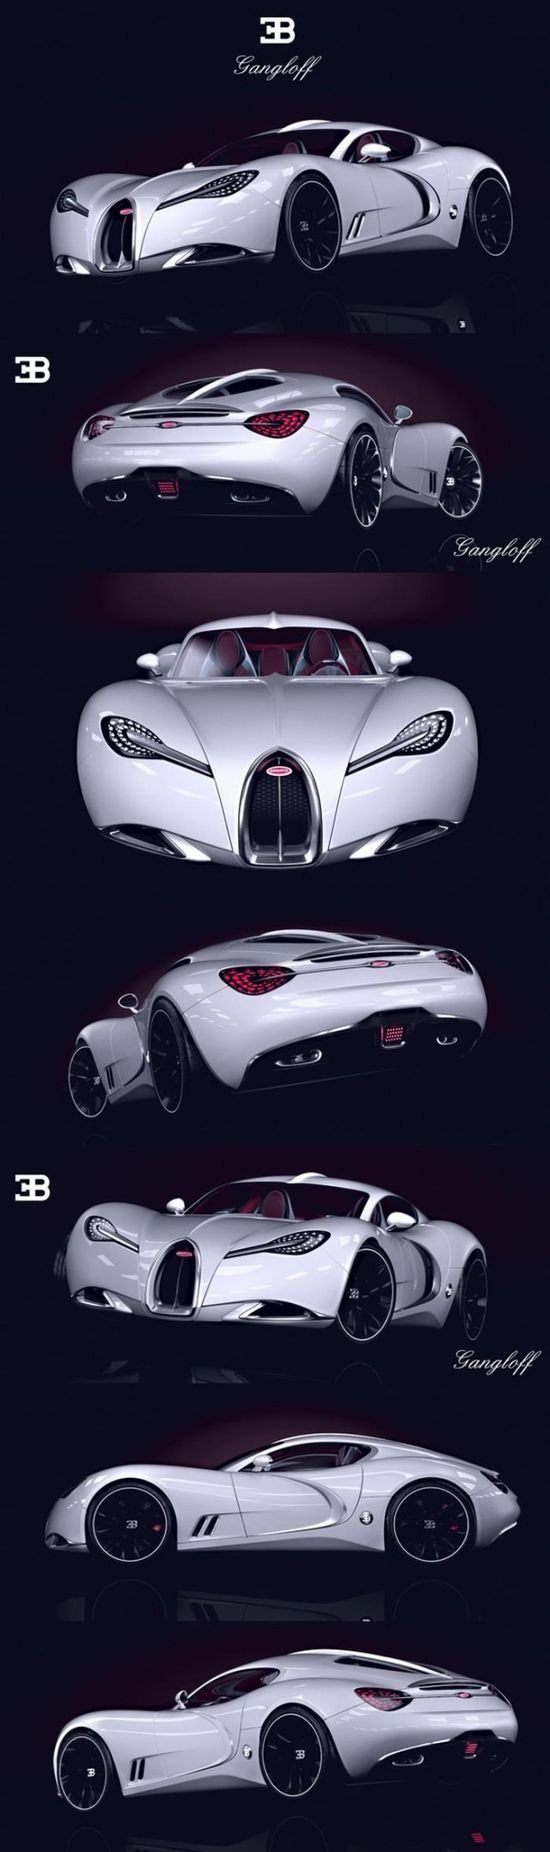 17 best ideas about bugatti on pinterest bugatti speed bugatti veyron 2016 and bugatti veyron. Black Bedroom Furniture Sets. Home Design Ideas